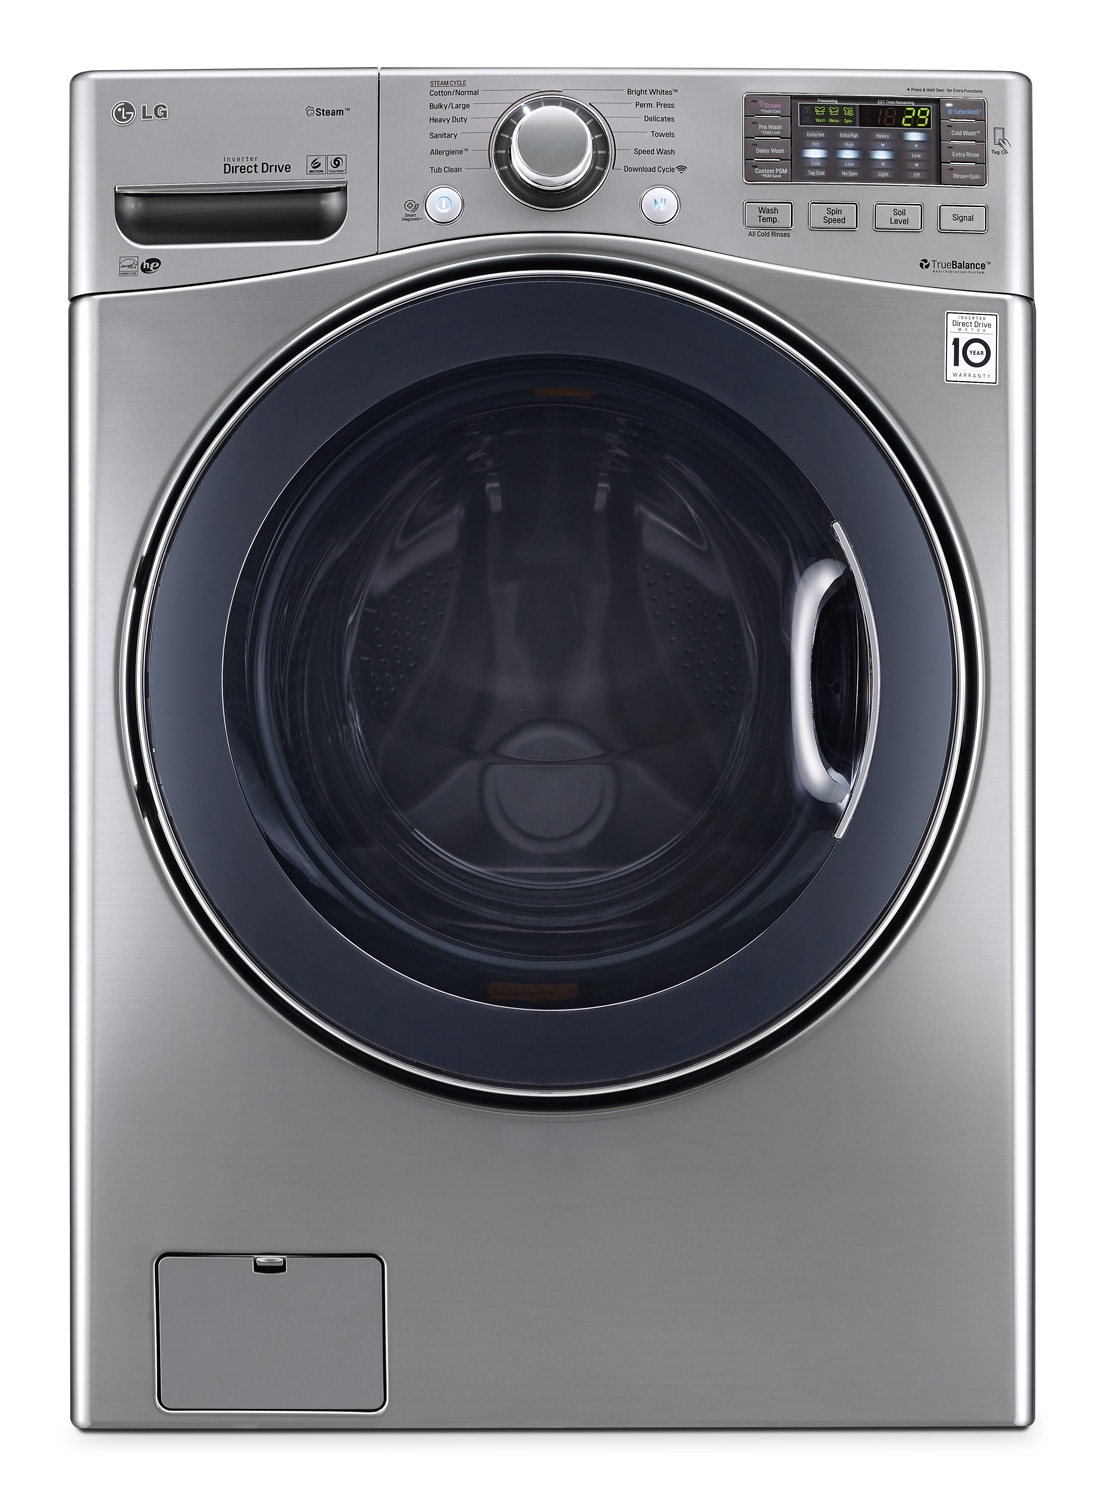 Washers and Dryers - LG Appliances Stainless Steel Front-Load Washer (5.0 Cu. Ft.) - WM3570HVA